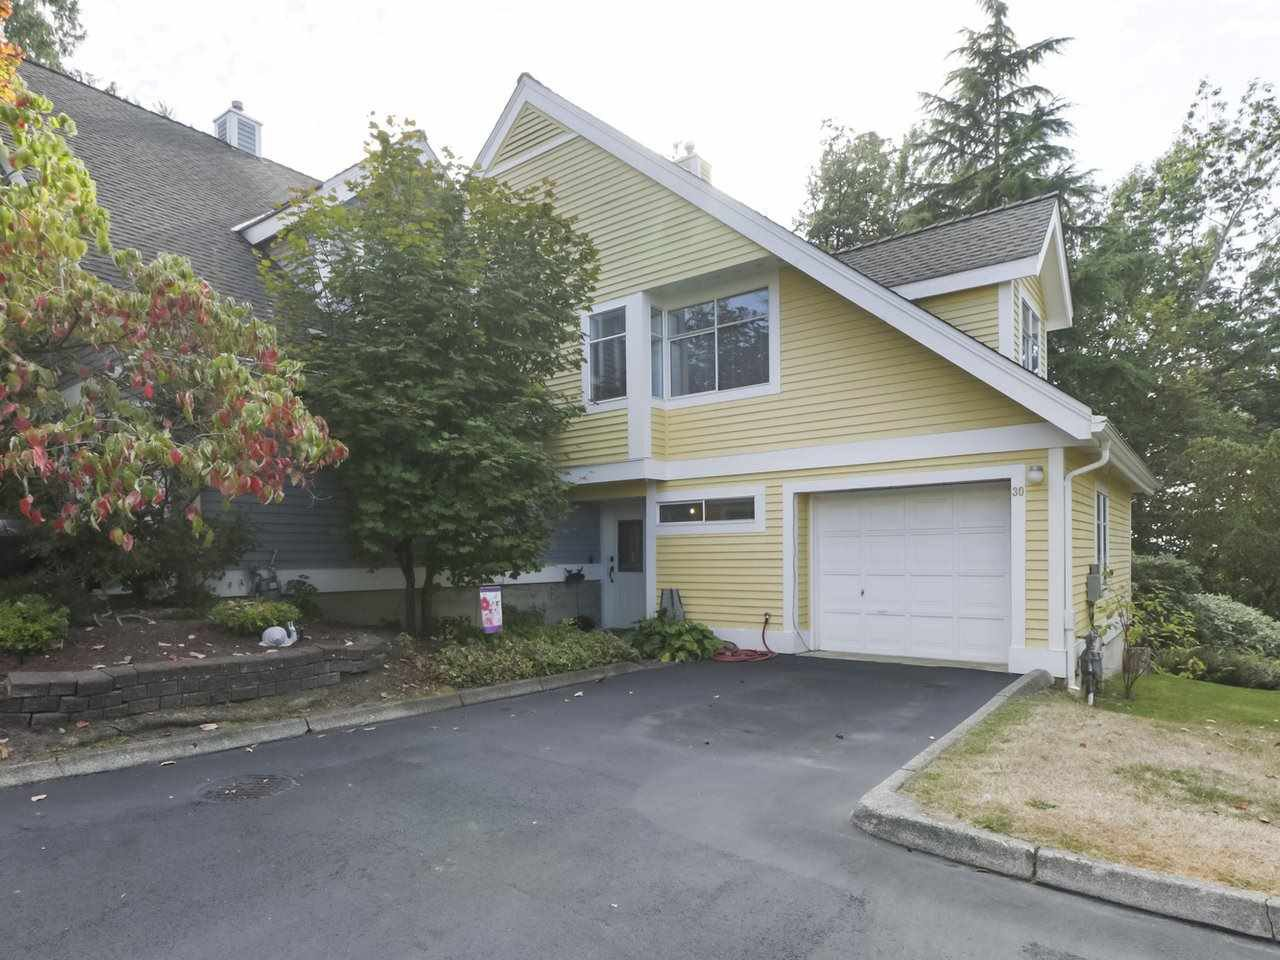 "Main Photo: 30 4847 219 Street in Langley: Murrayville Townhouse for sale in ""Waterford Ridge"" : MLS®# R2402627"